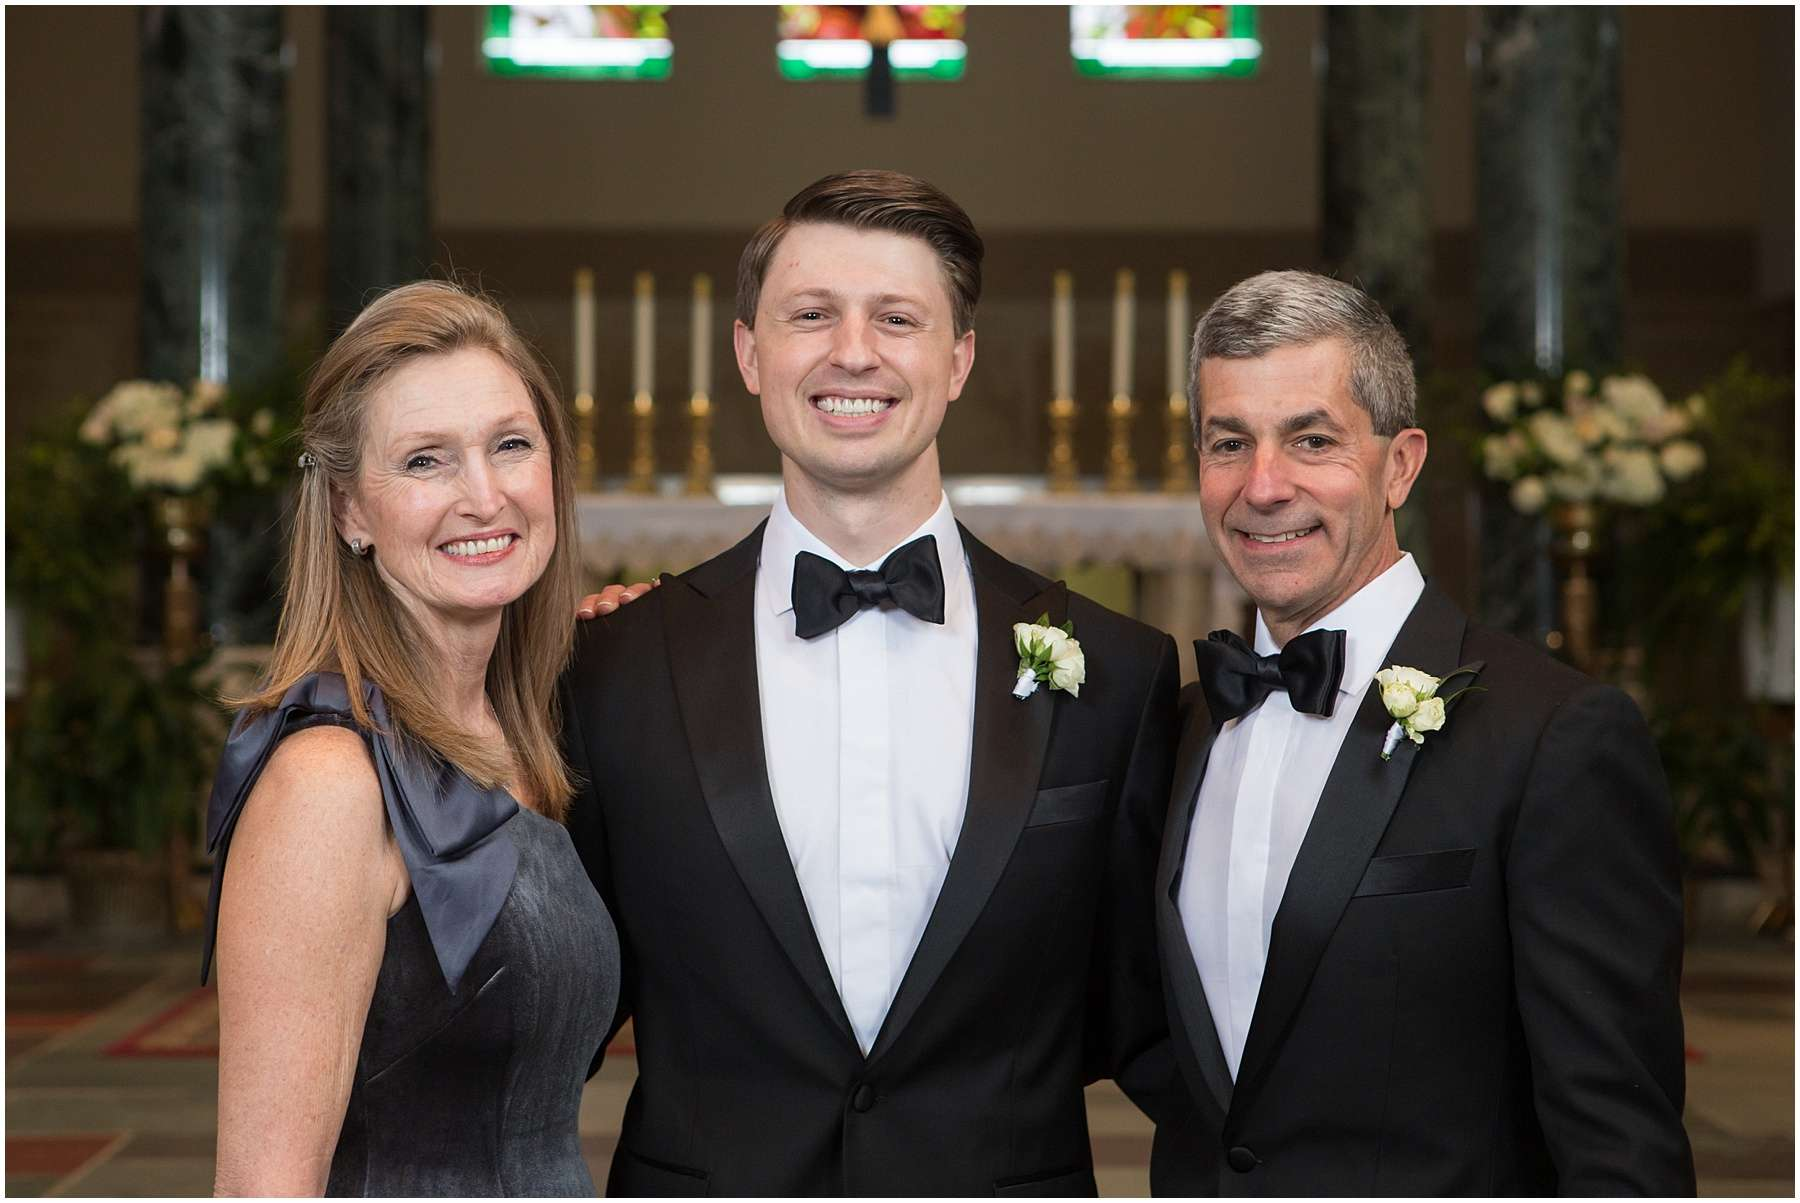 Wedding at the Ohio Statehouse | Columbus Ohio Weddings 128